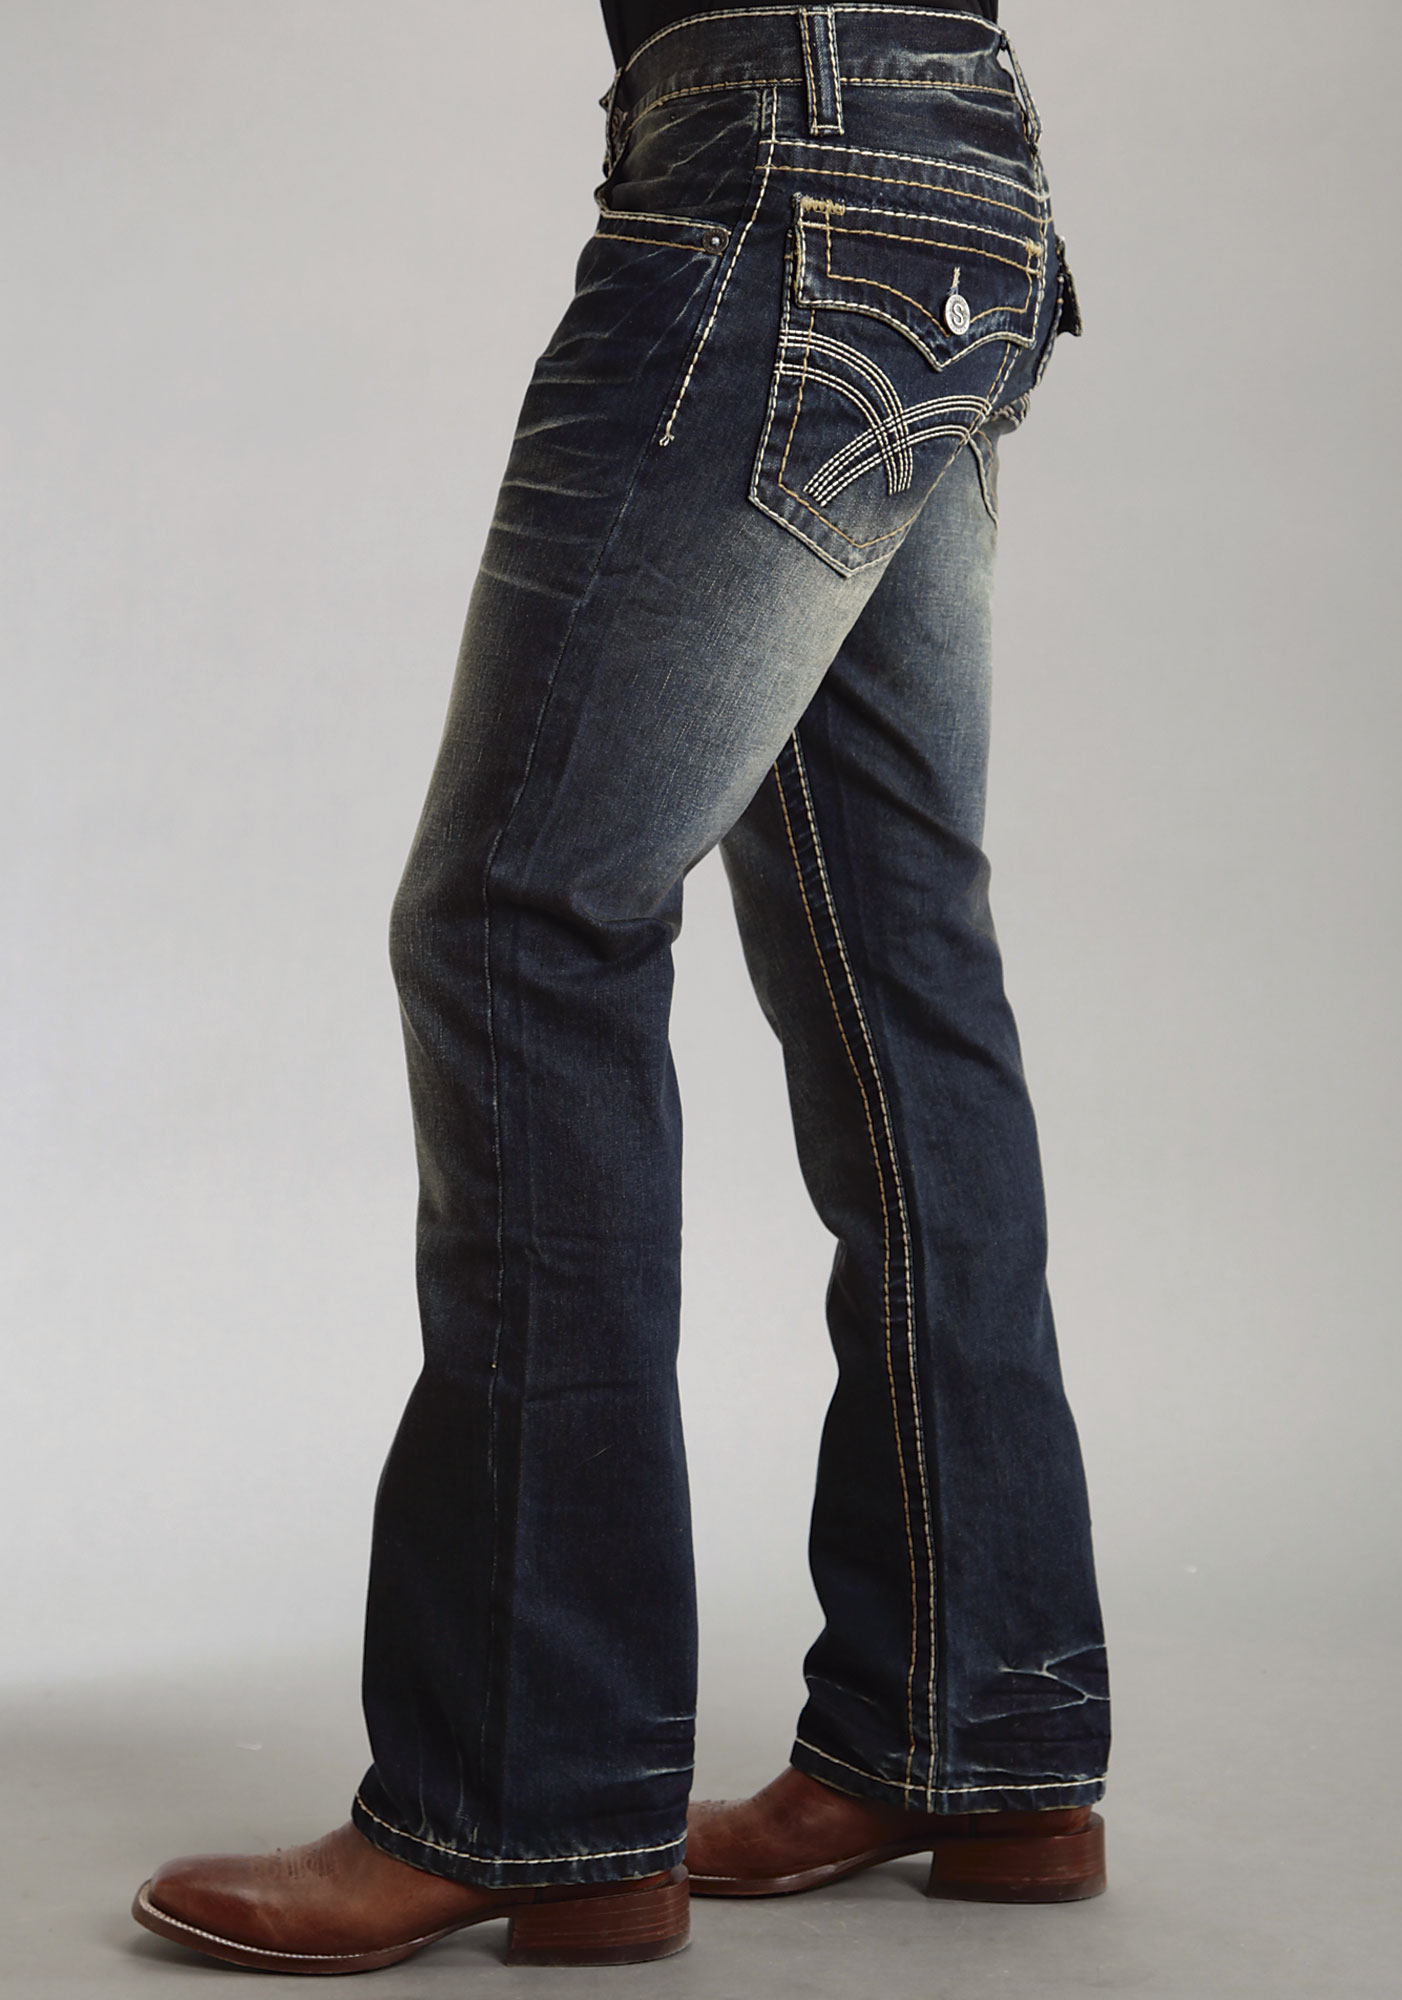 Bootcut dress pants fall between a skinny pant and a flare or wide leg pant. They are slimmer through the thigh and slightly flare out toward the ankle. Available in Editor and Columnist styles, you are sure to find a fit that works for you.